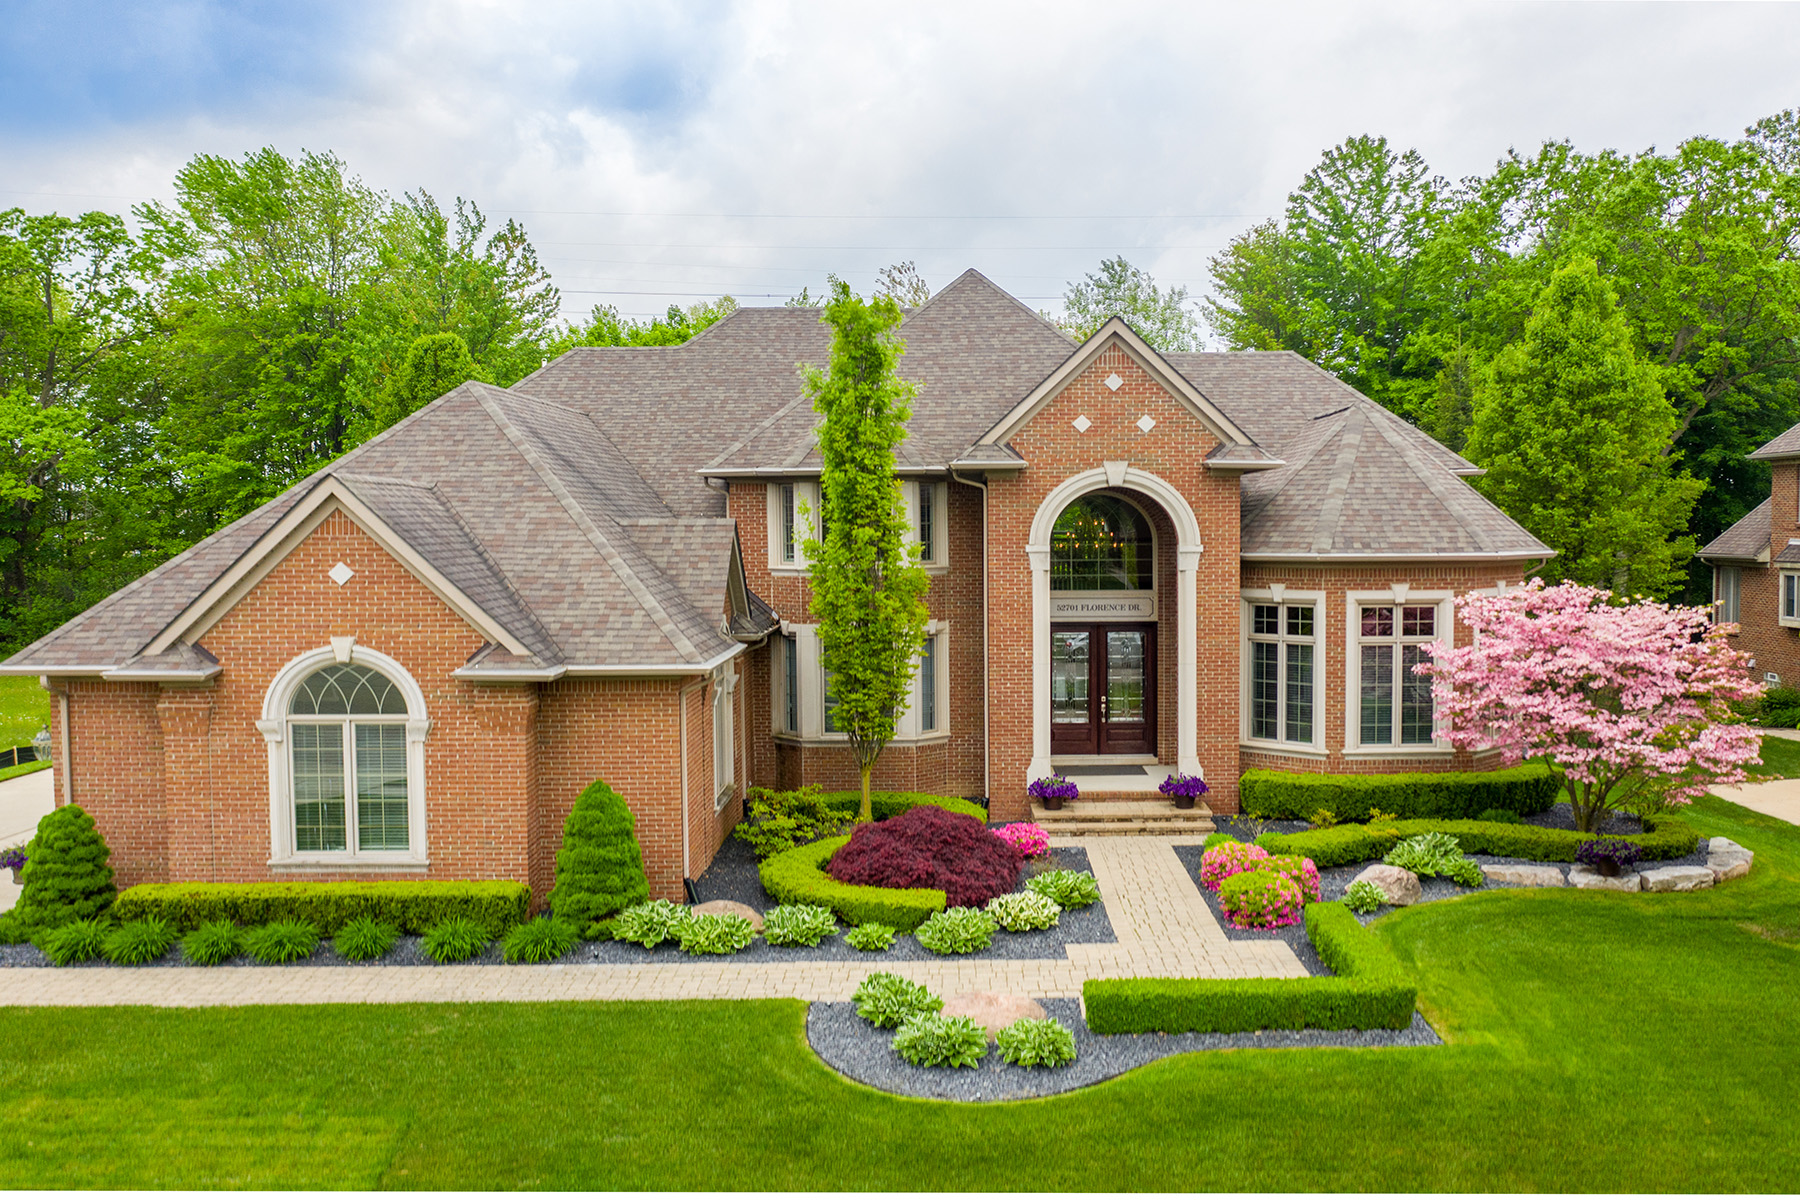 Single Family Homes for Sale at Shelby Township 52701 Florence Drive Shelby Township, Michigan 48315 United States